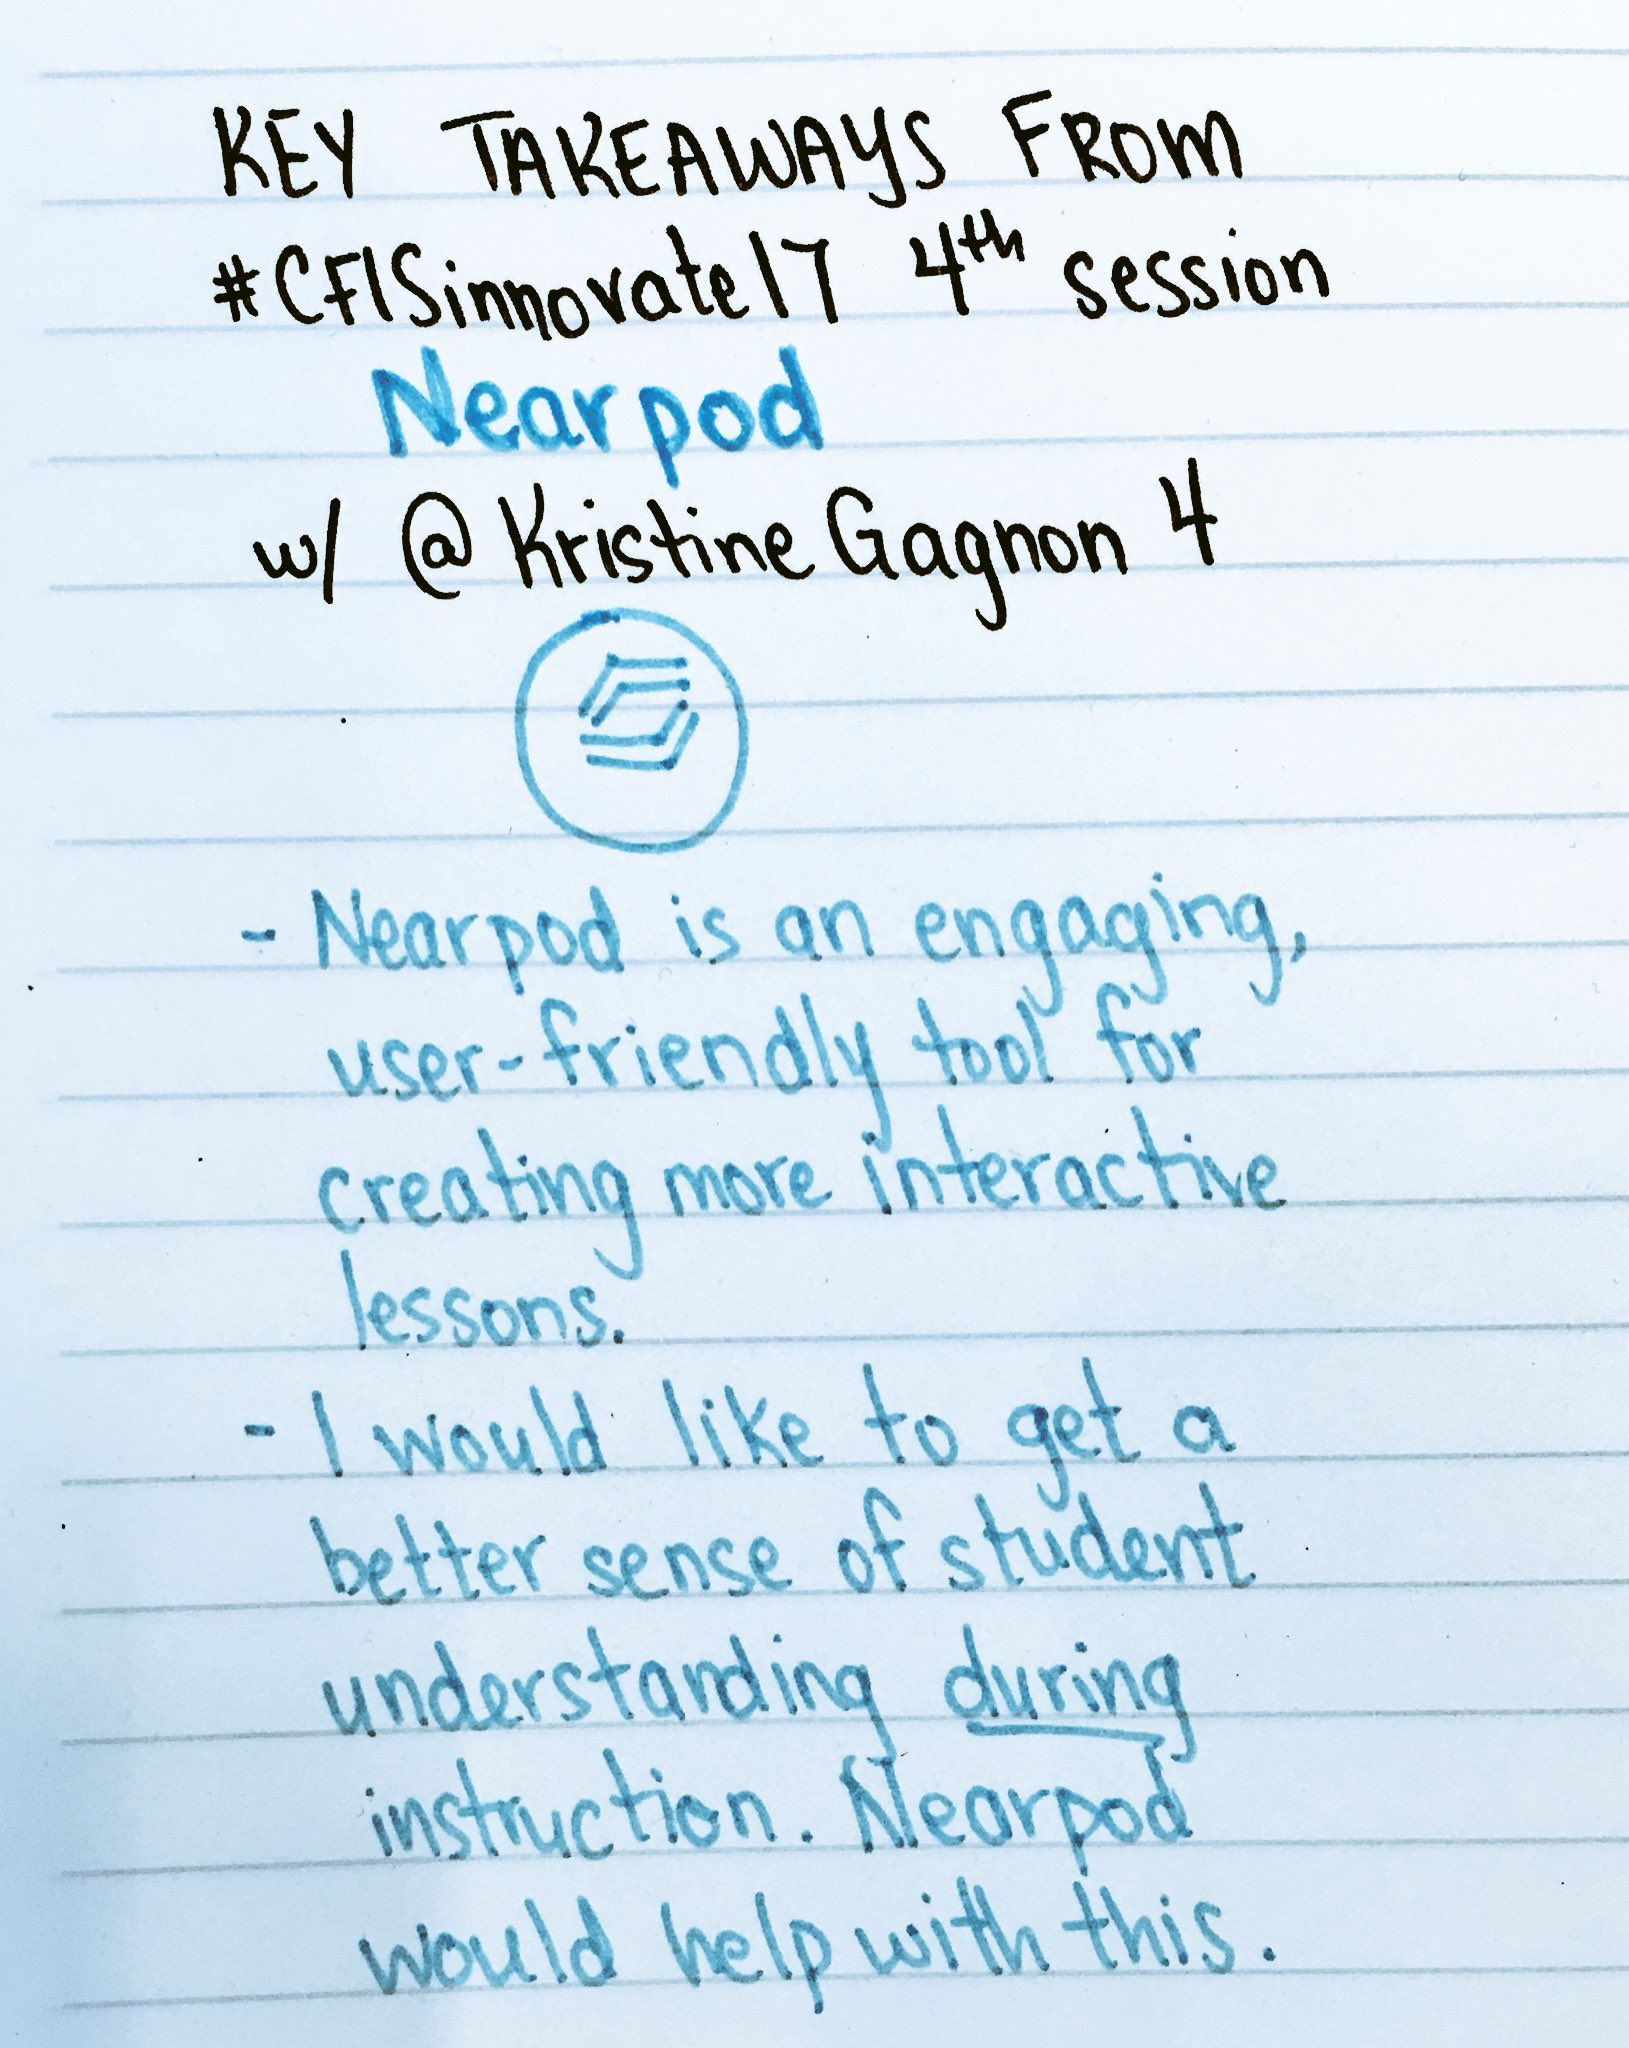 Recap 4 of #CFISinnovate17. Excited to try @nearpod after today's session by @KristineGagnon4. Great for quick feedback & engaging lessons. https://t.co/nQbMYiNjOy